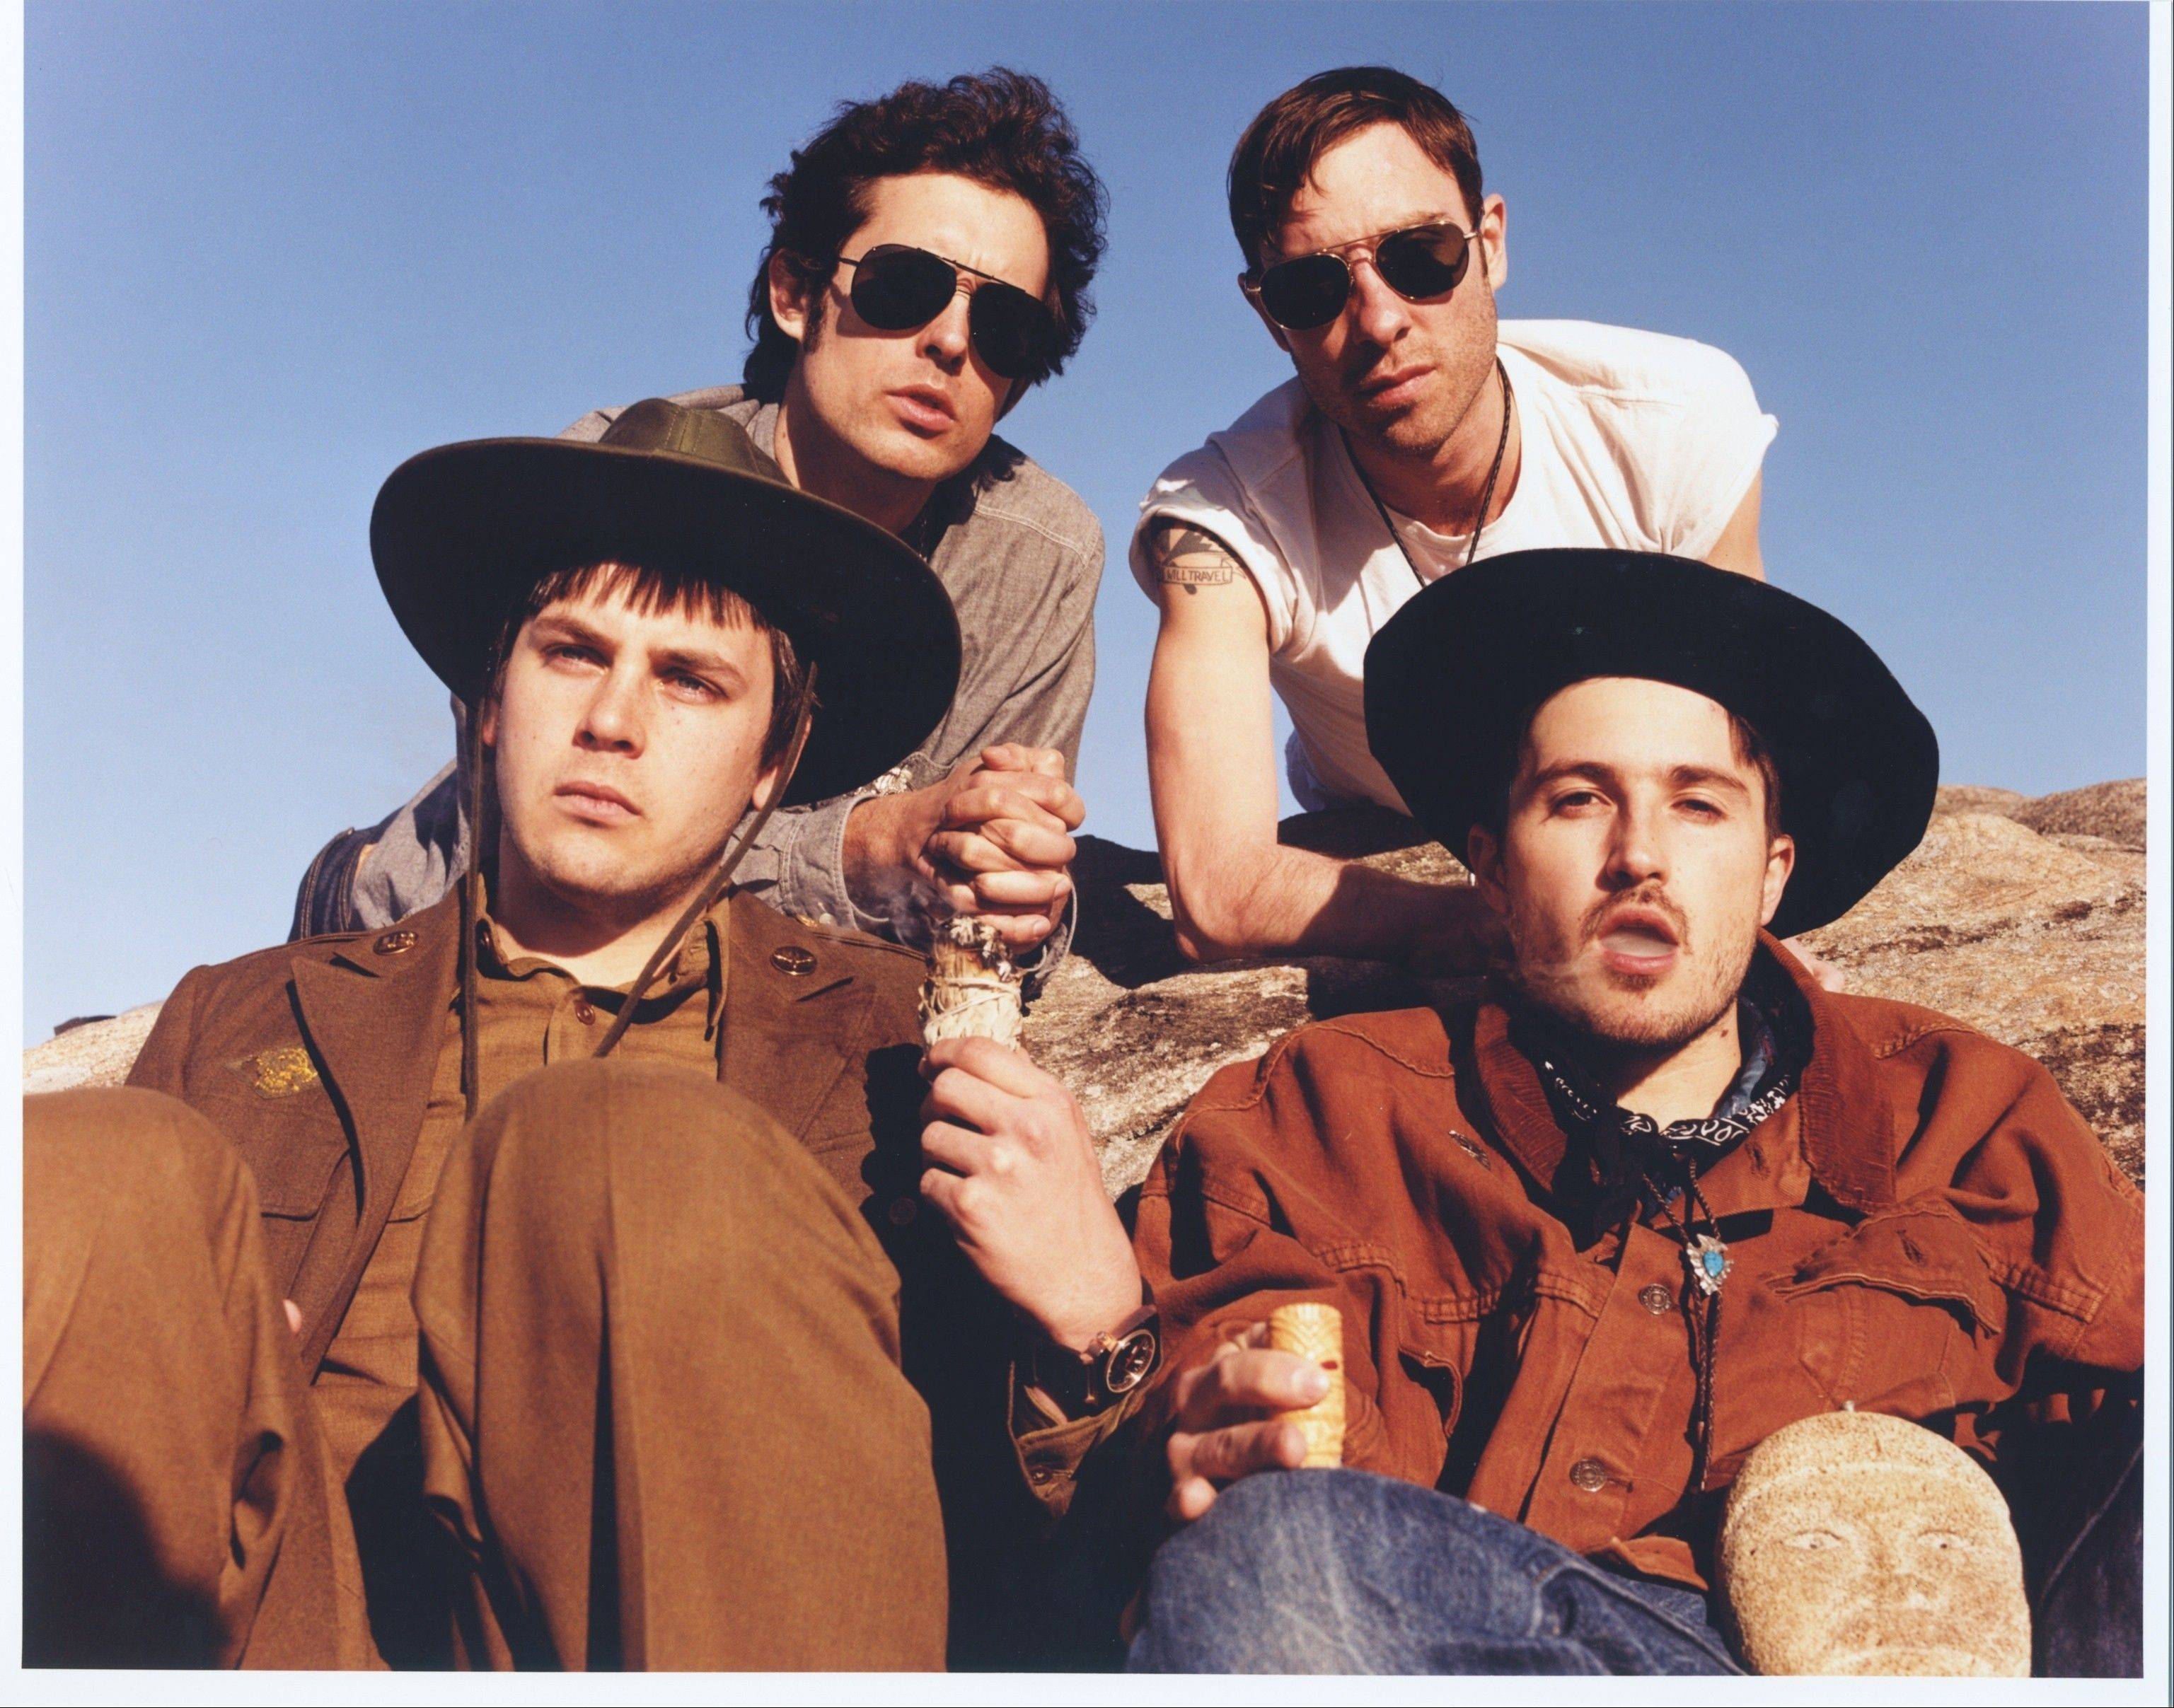 Like gritty, grimy rock 'n' roll? The Black Lips will deliver just that at Lollapalooza.